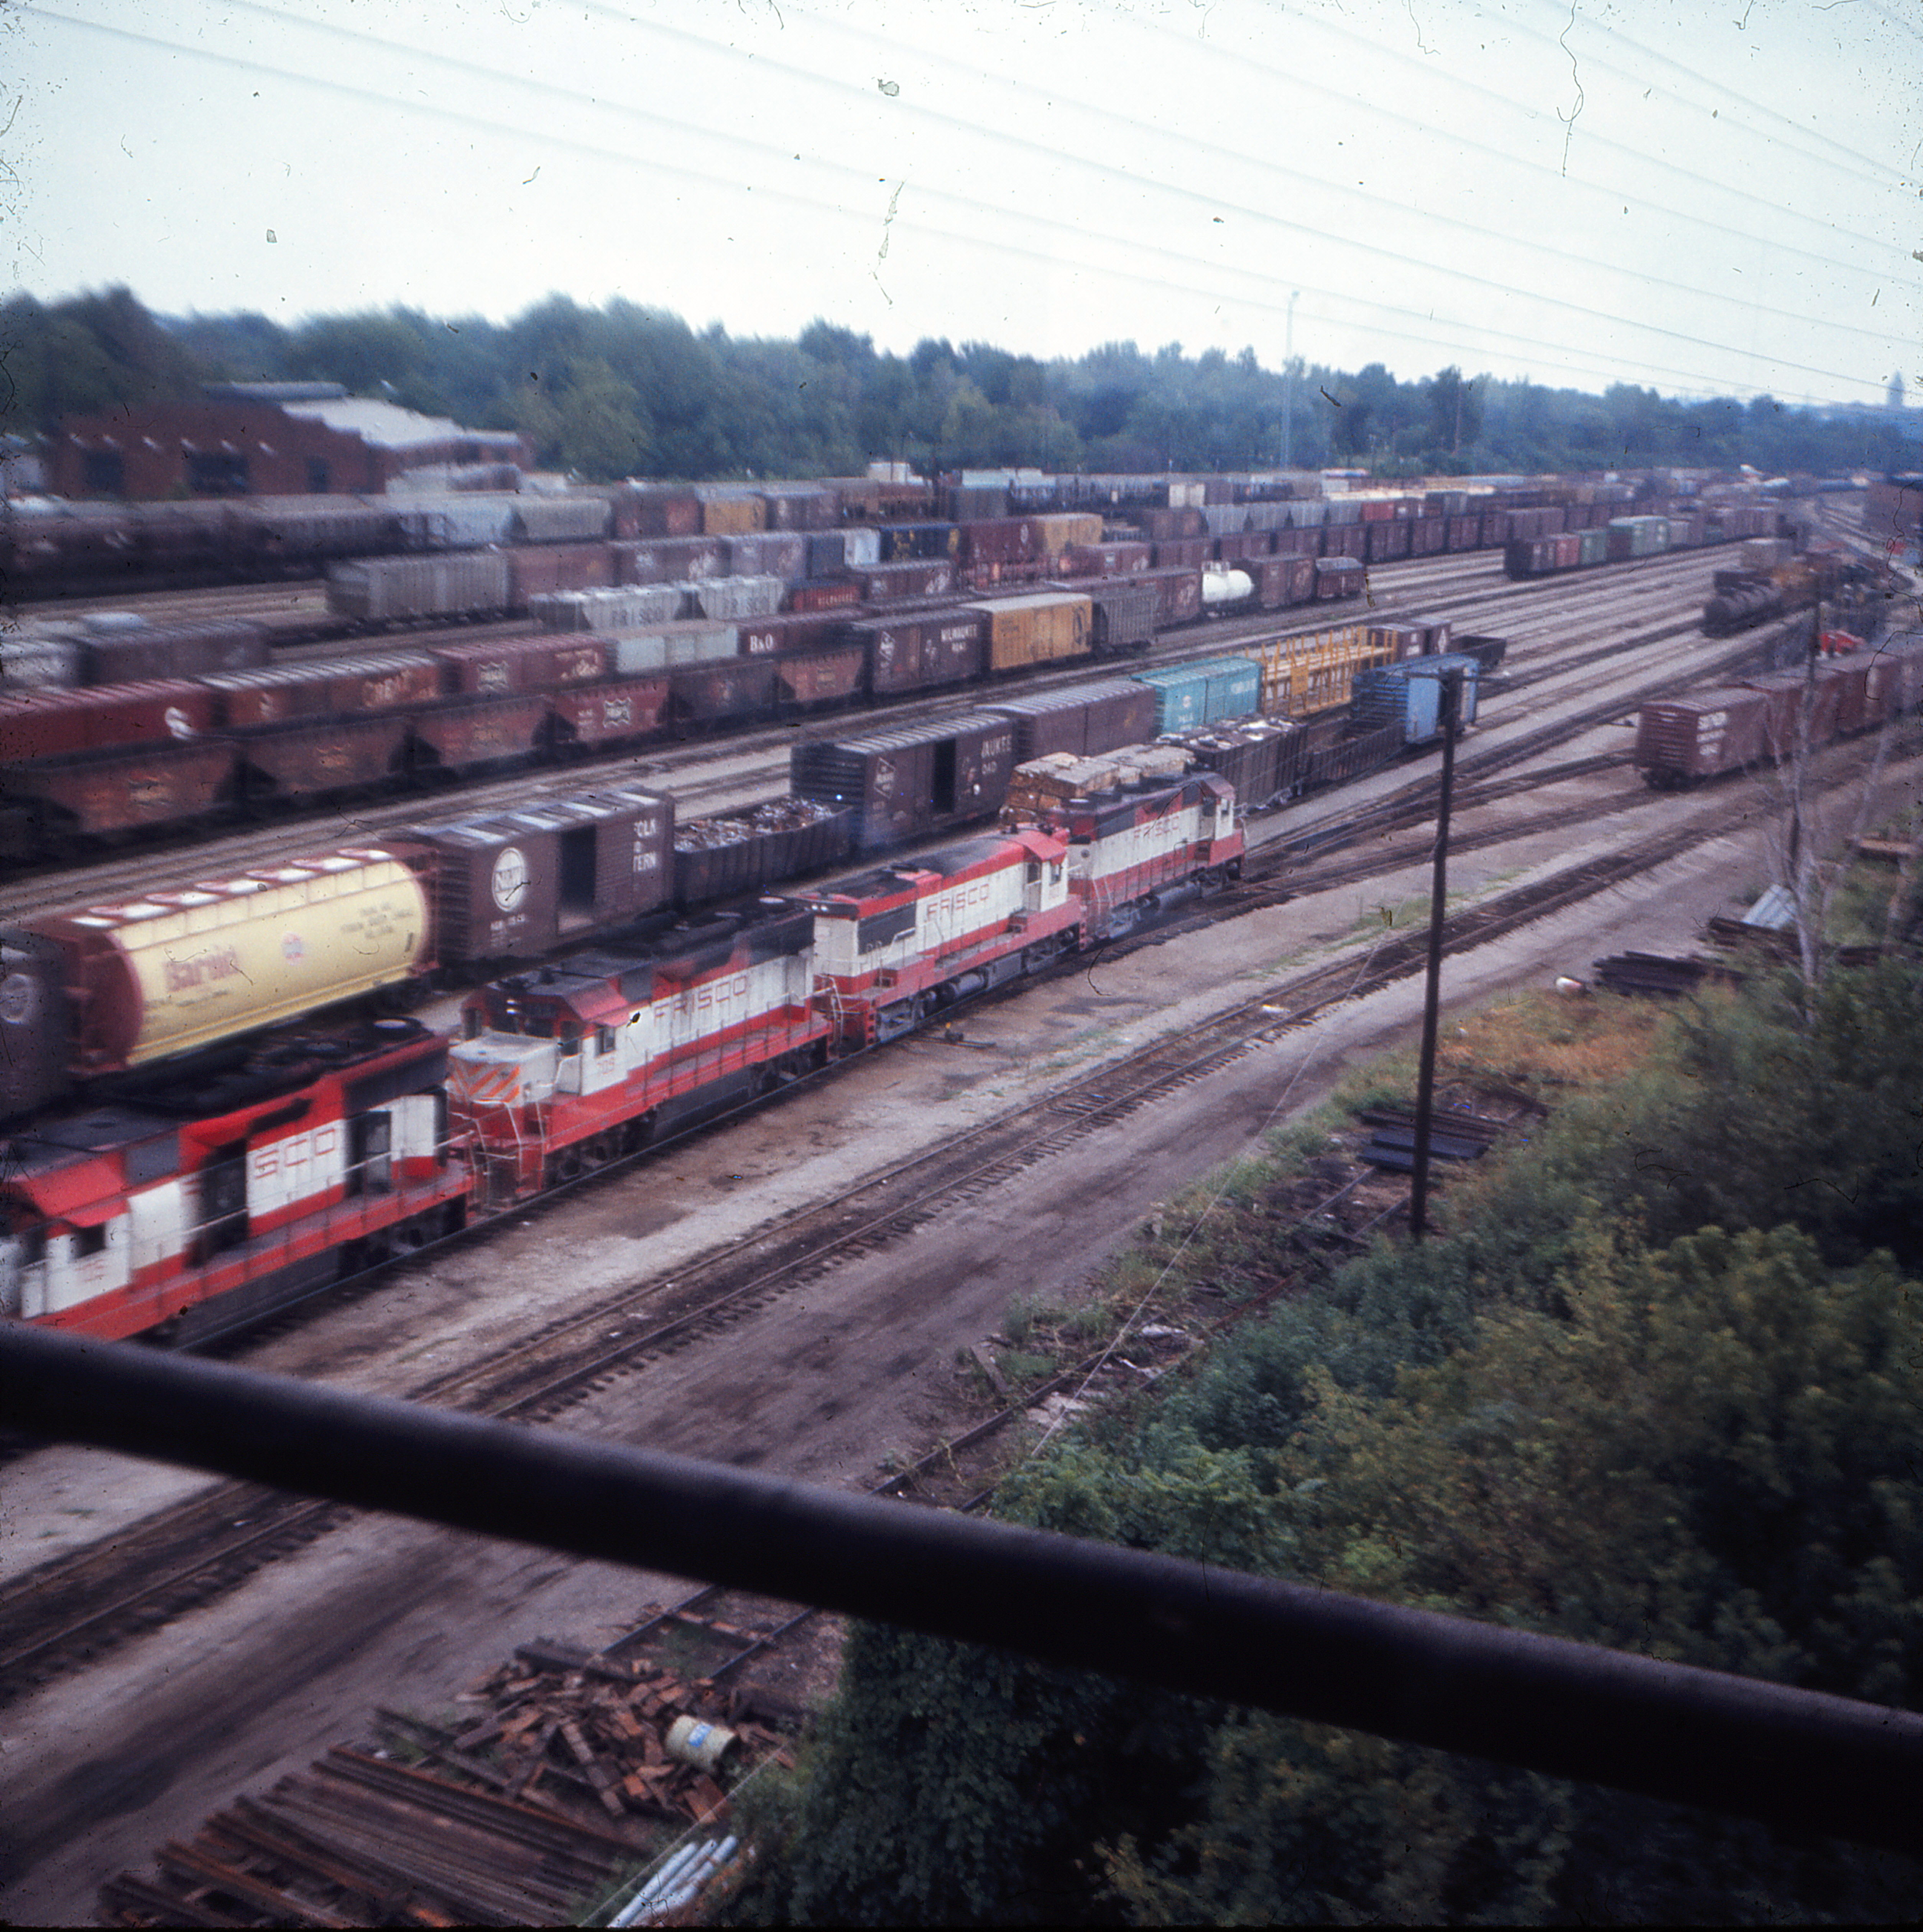 Lindenwood Yard, St. Louis, Missouri in August 1970 (Ken McElreath)